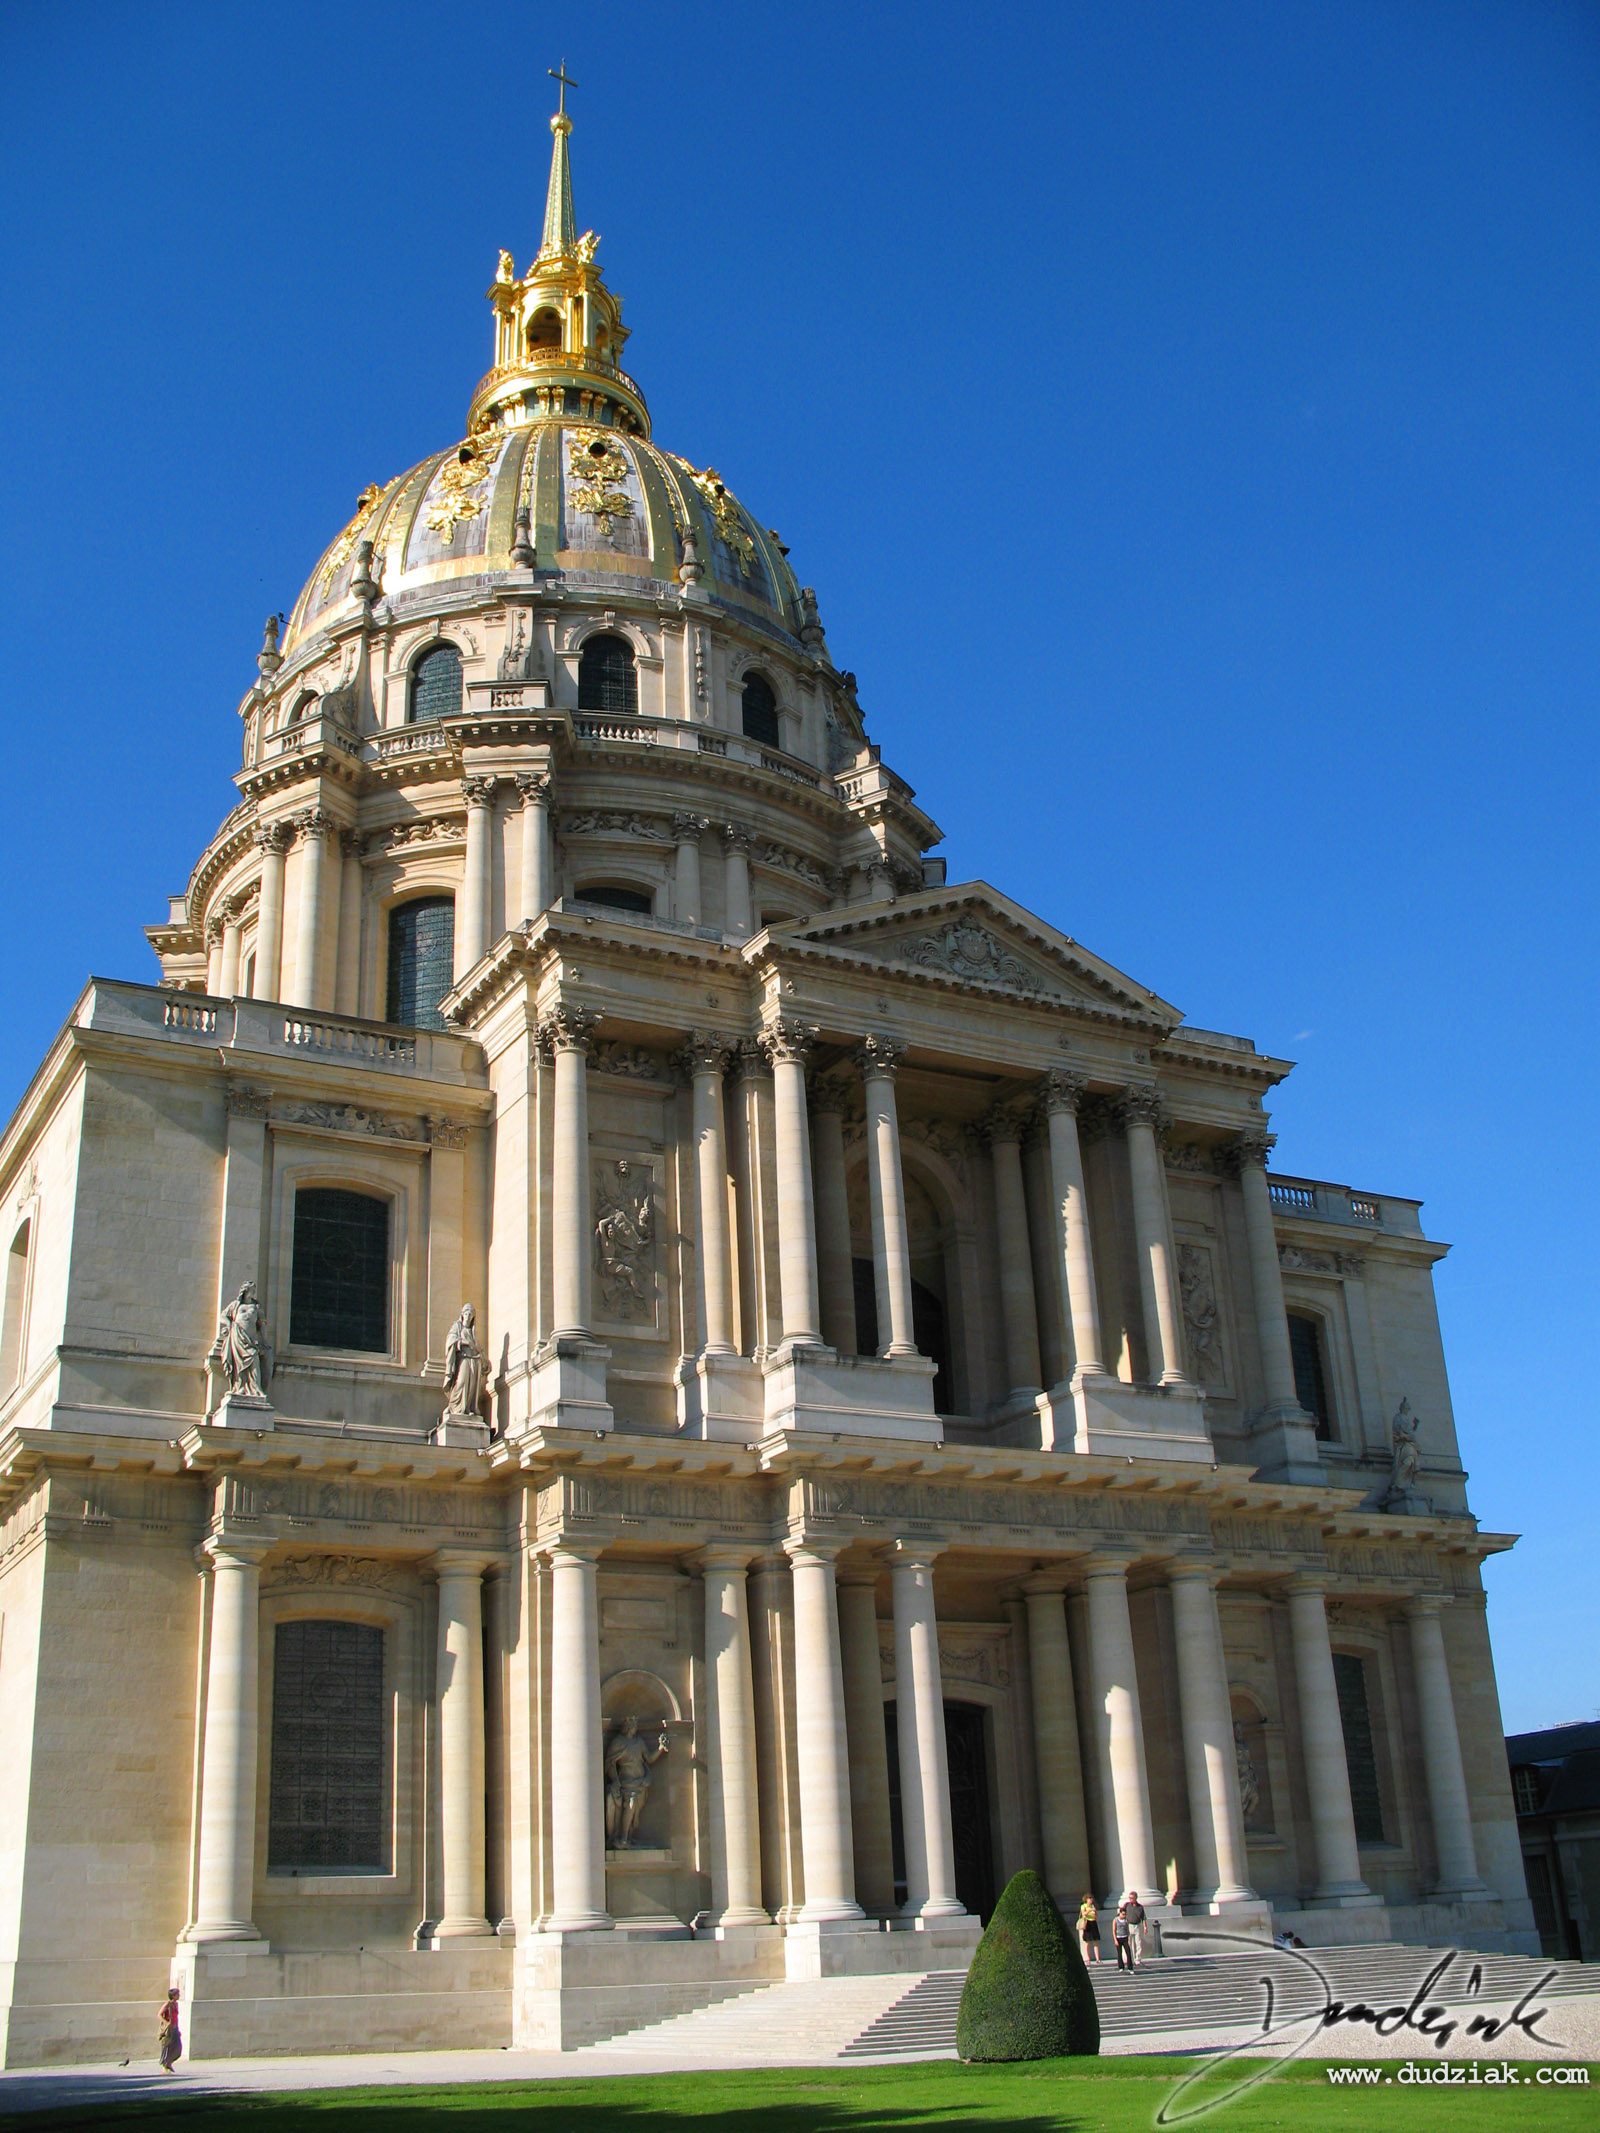 Picture of the Les Invalides in Paris, site of Napoleon's Tomb.